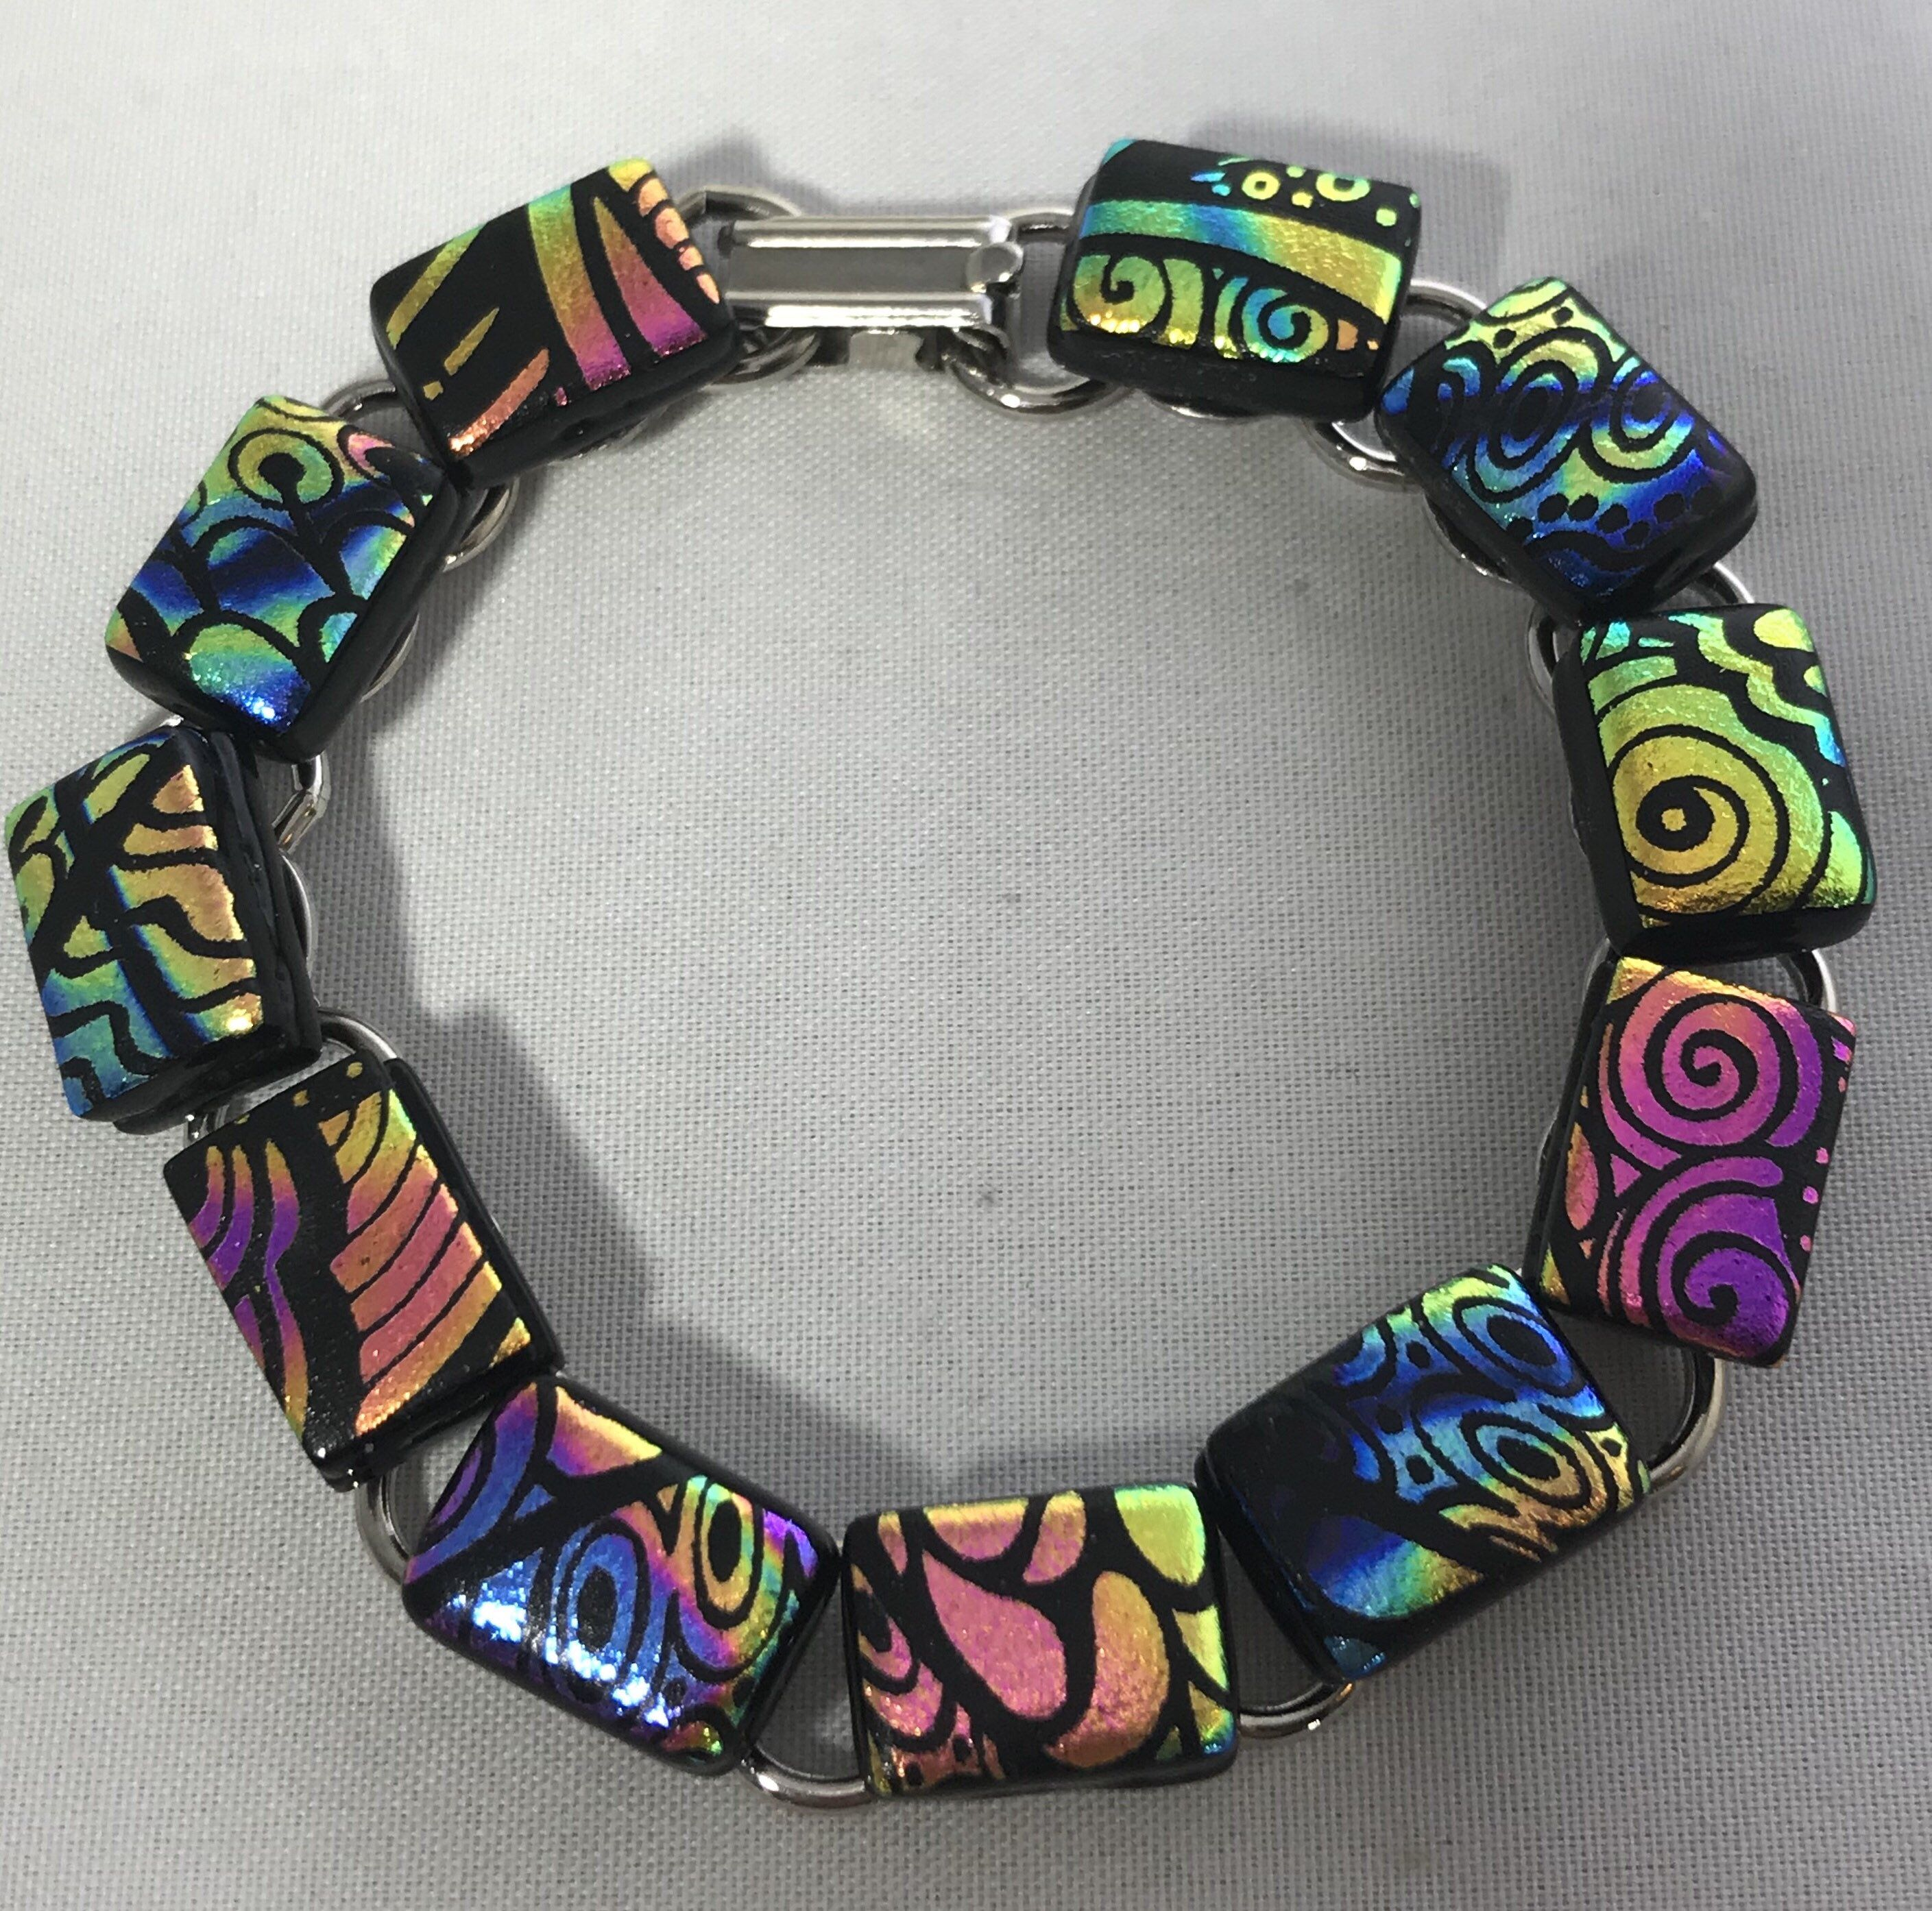 725 dichroic glass bracelet with standard closure by